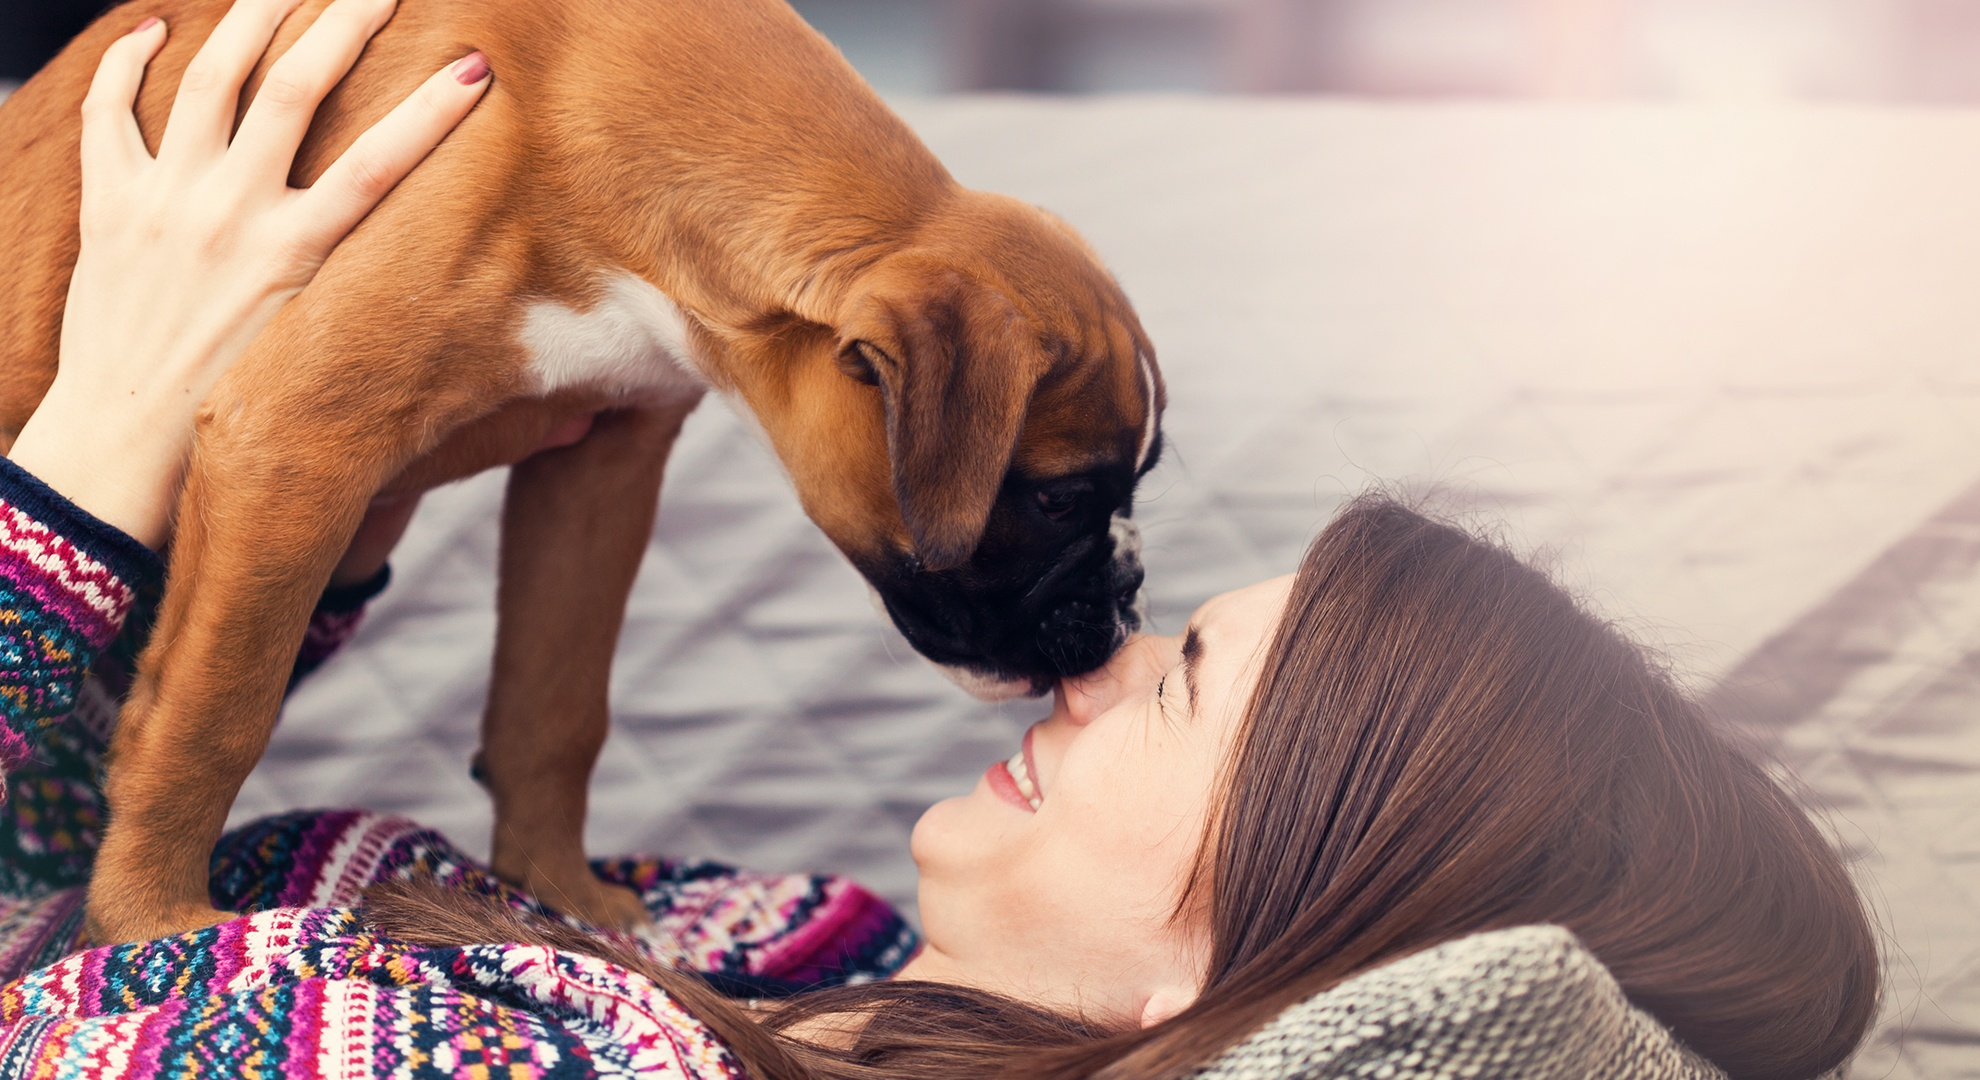 Tips to keep your new puppy safe and your home and sanity intact